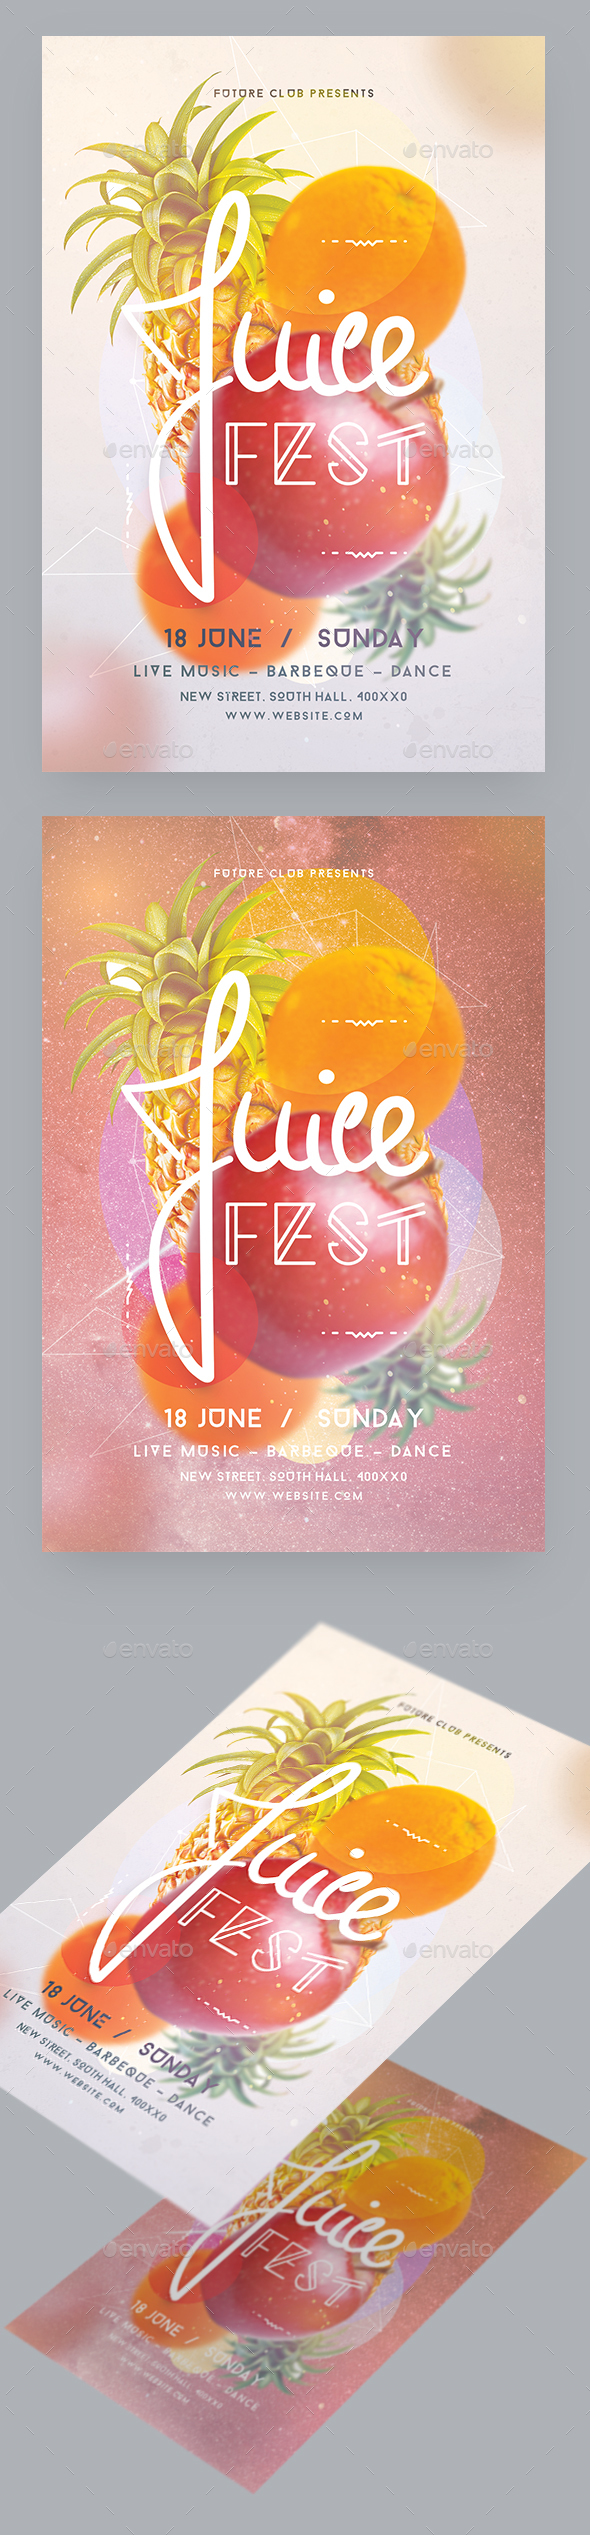 Juice Fest Party Flyer - Events Flyers